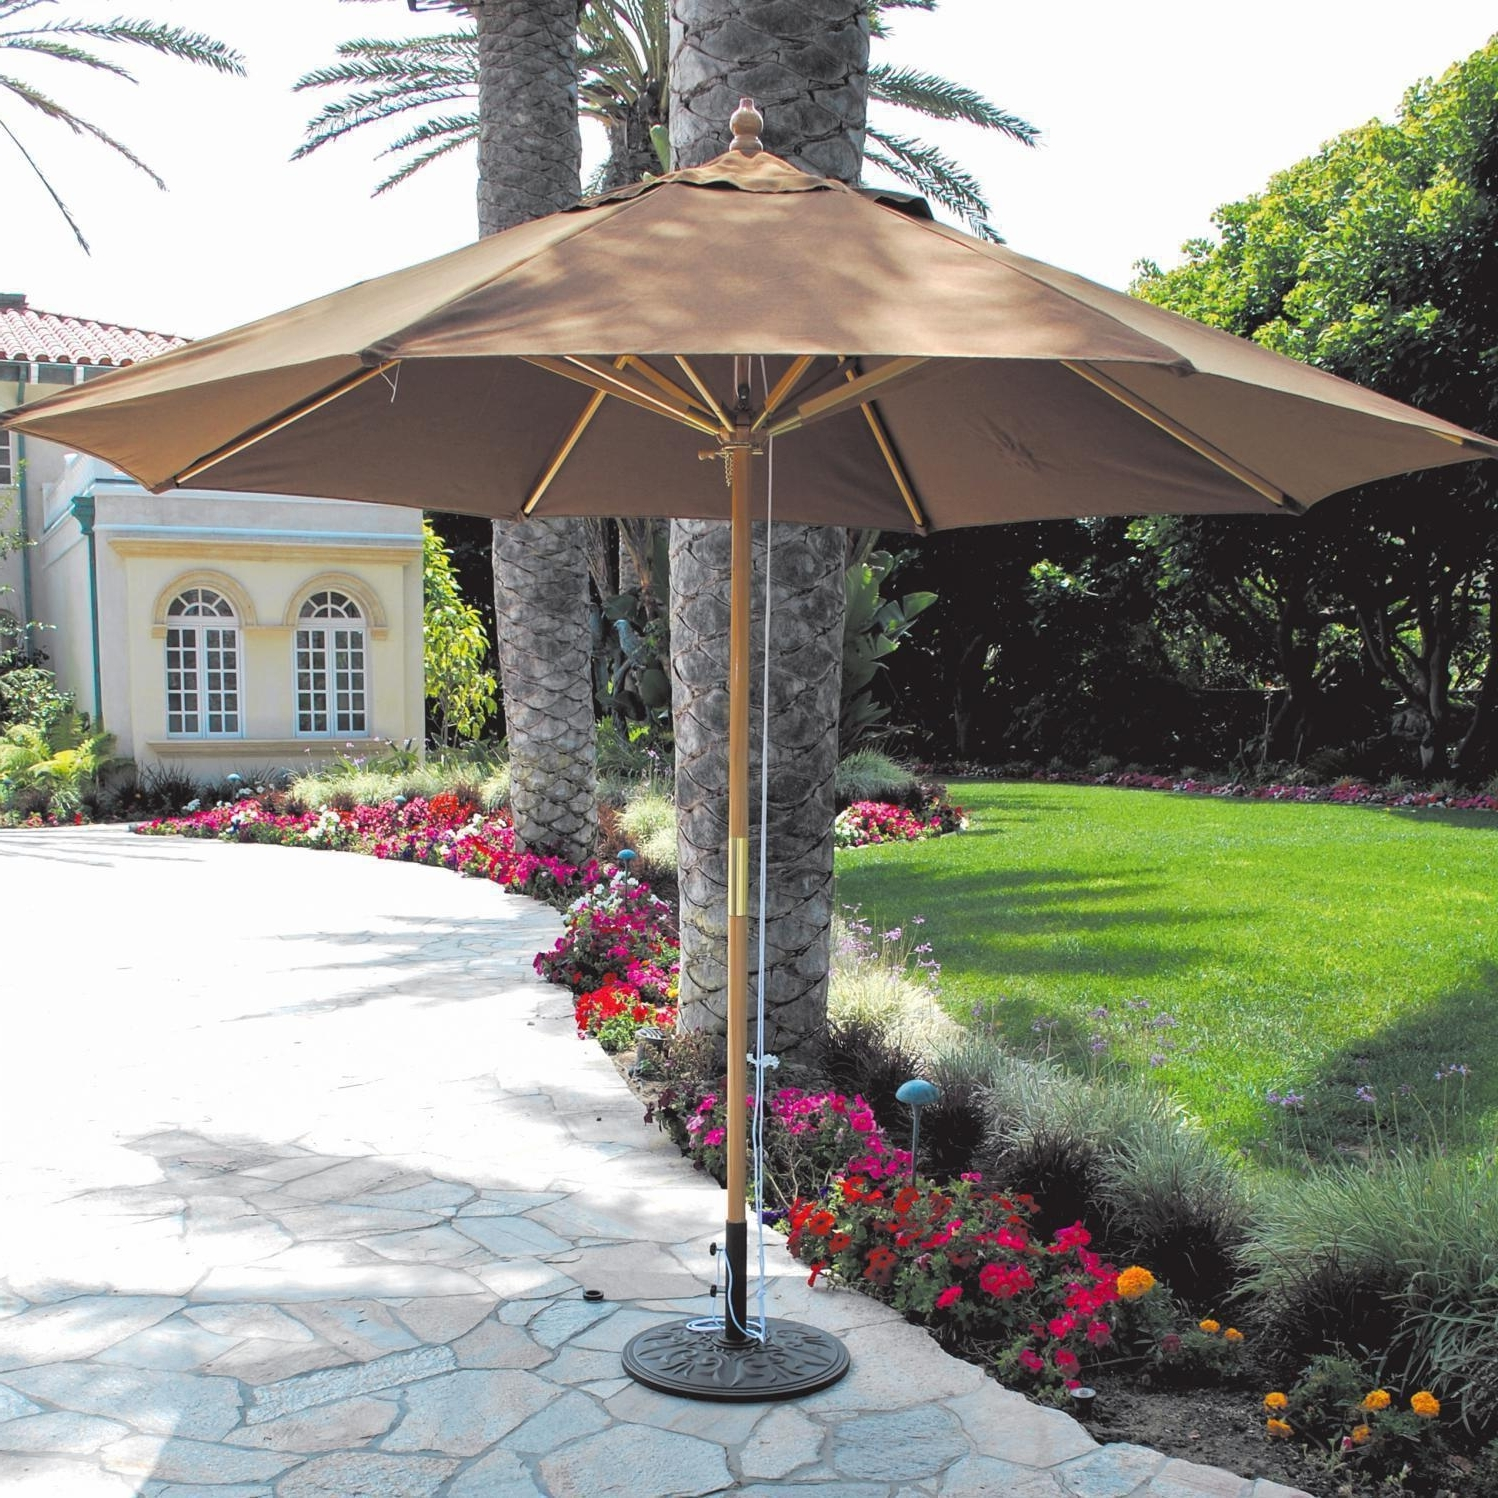 Newest Galtech 11 Ft Wood Patio Umbrella With Pulley Lift – Light Wood Inside 11 Ft Patio Umbrellas (View 16 of 20)